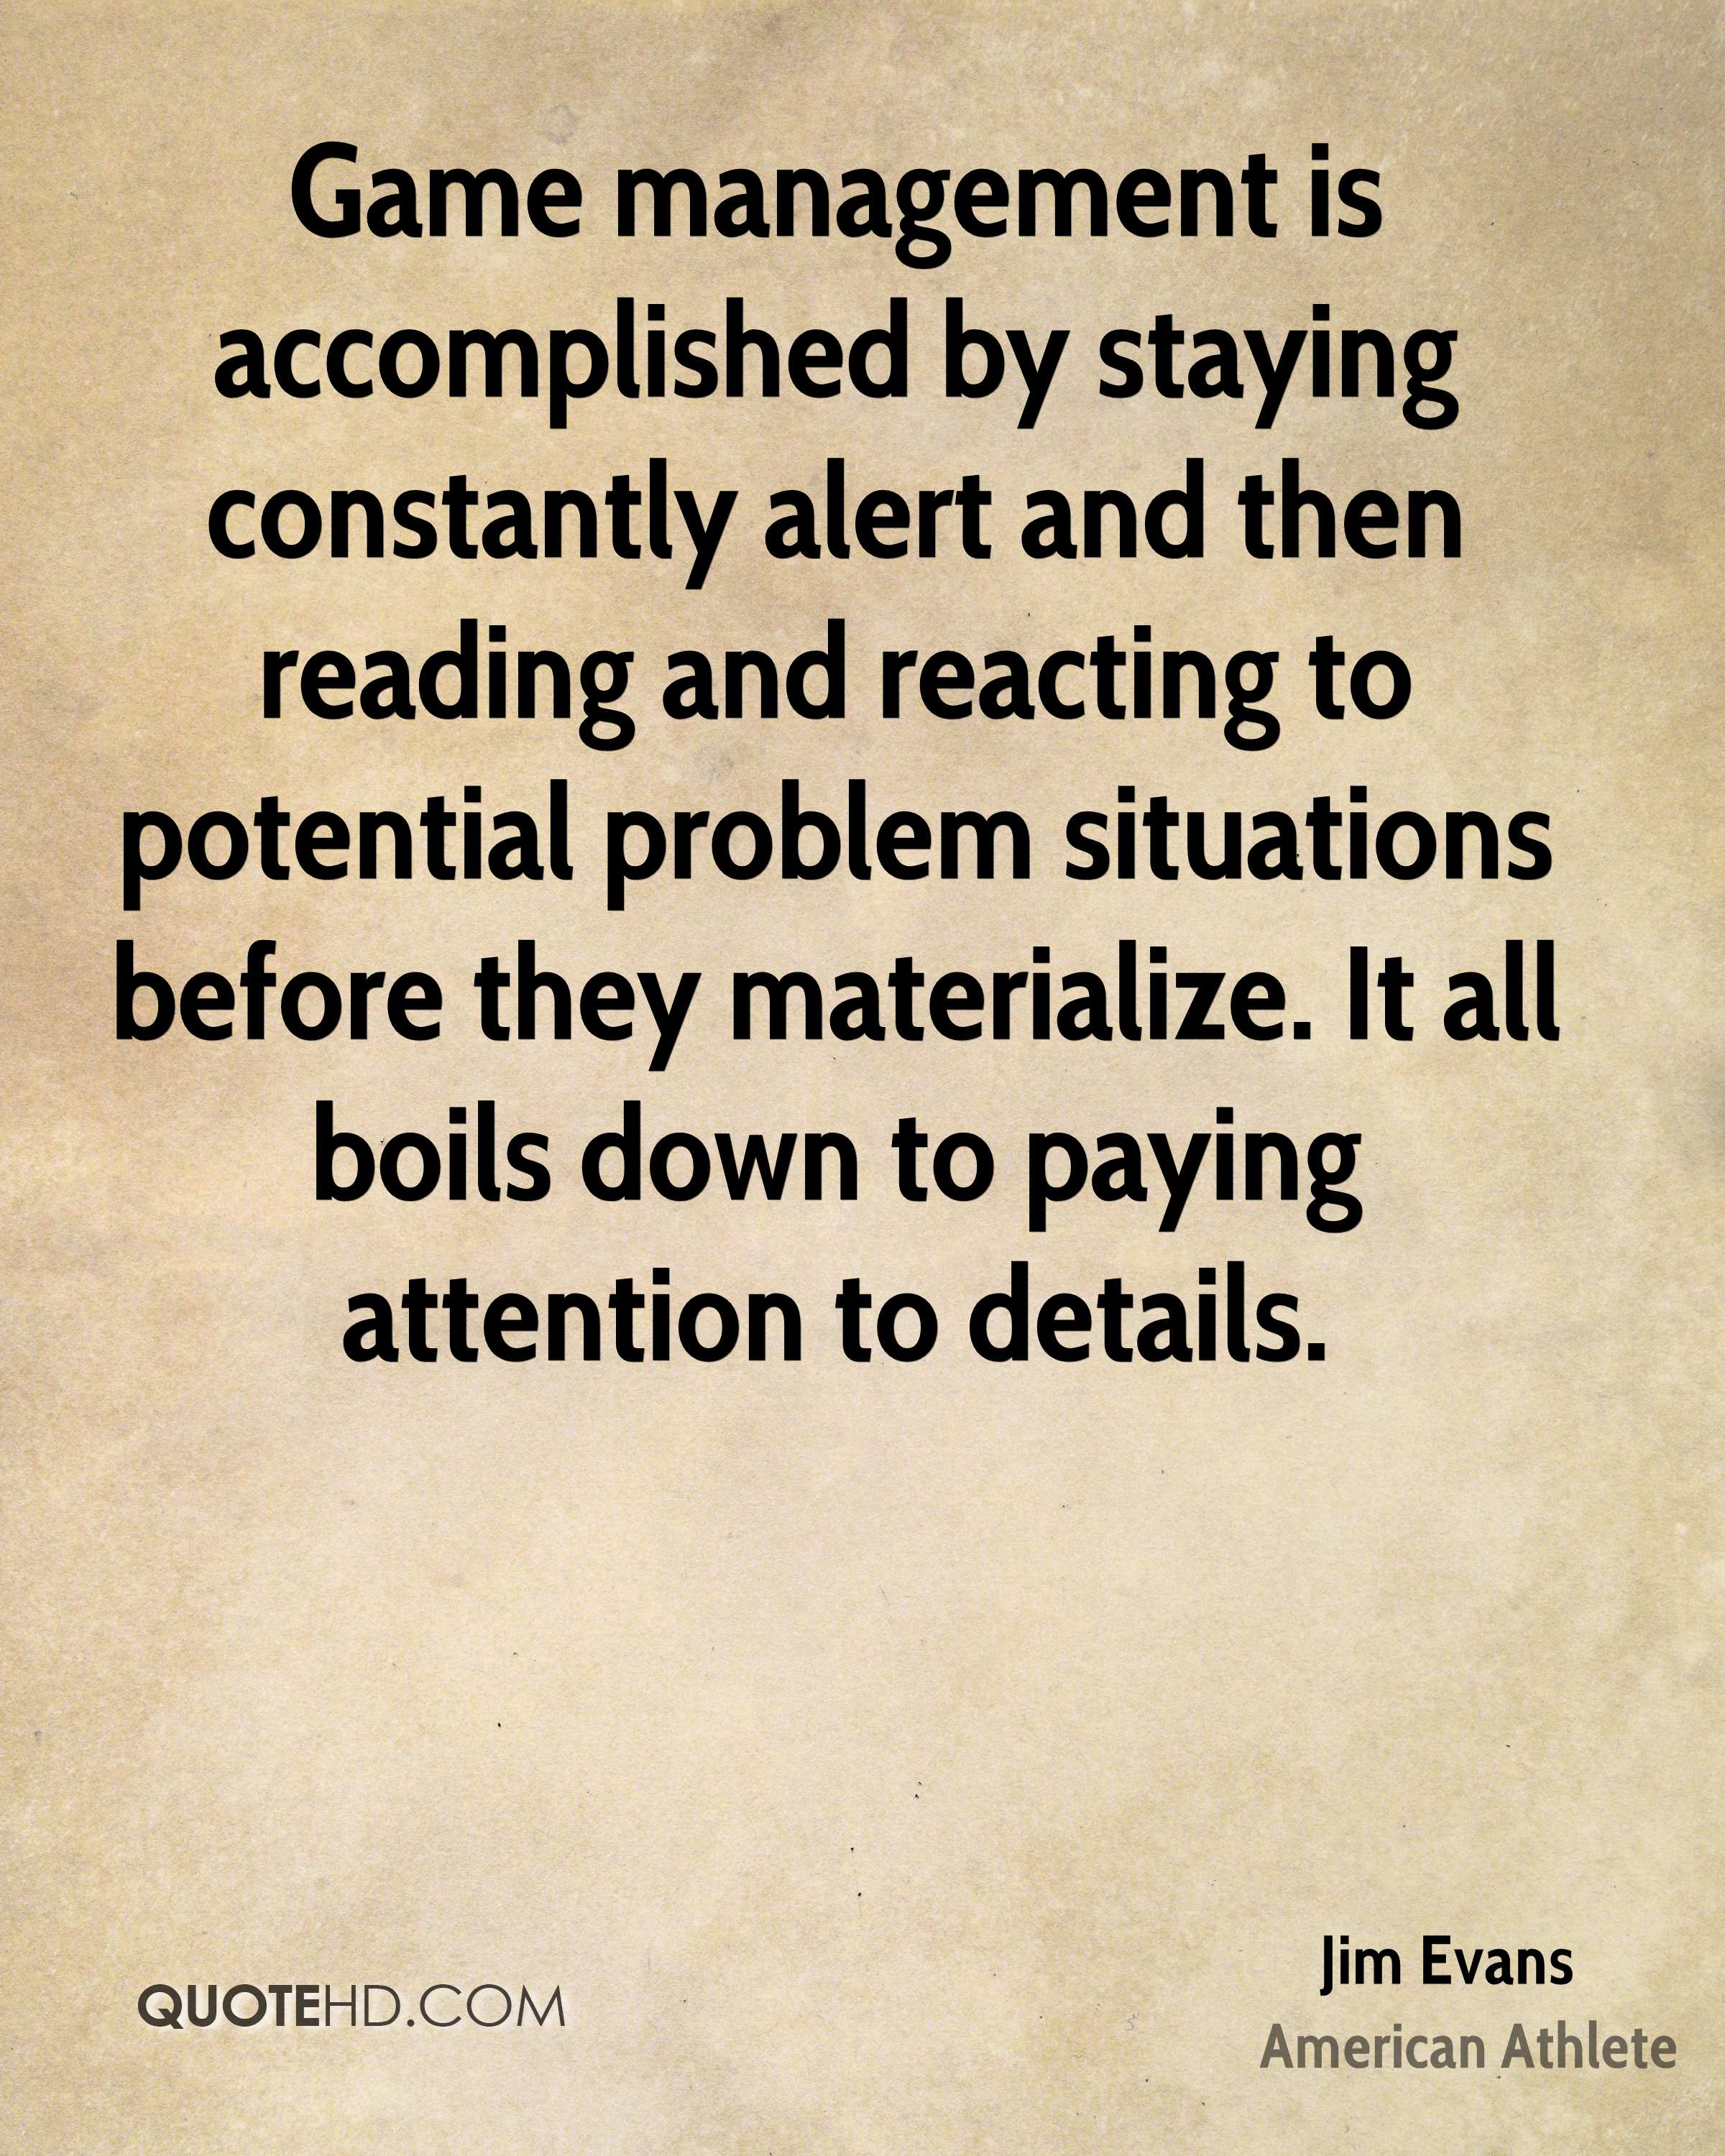 Game management is accomplished by staying constantly alert and then reading and reacting to potential problem situations before they materialize. It all boils down to paying attention to details.